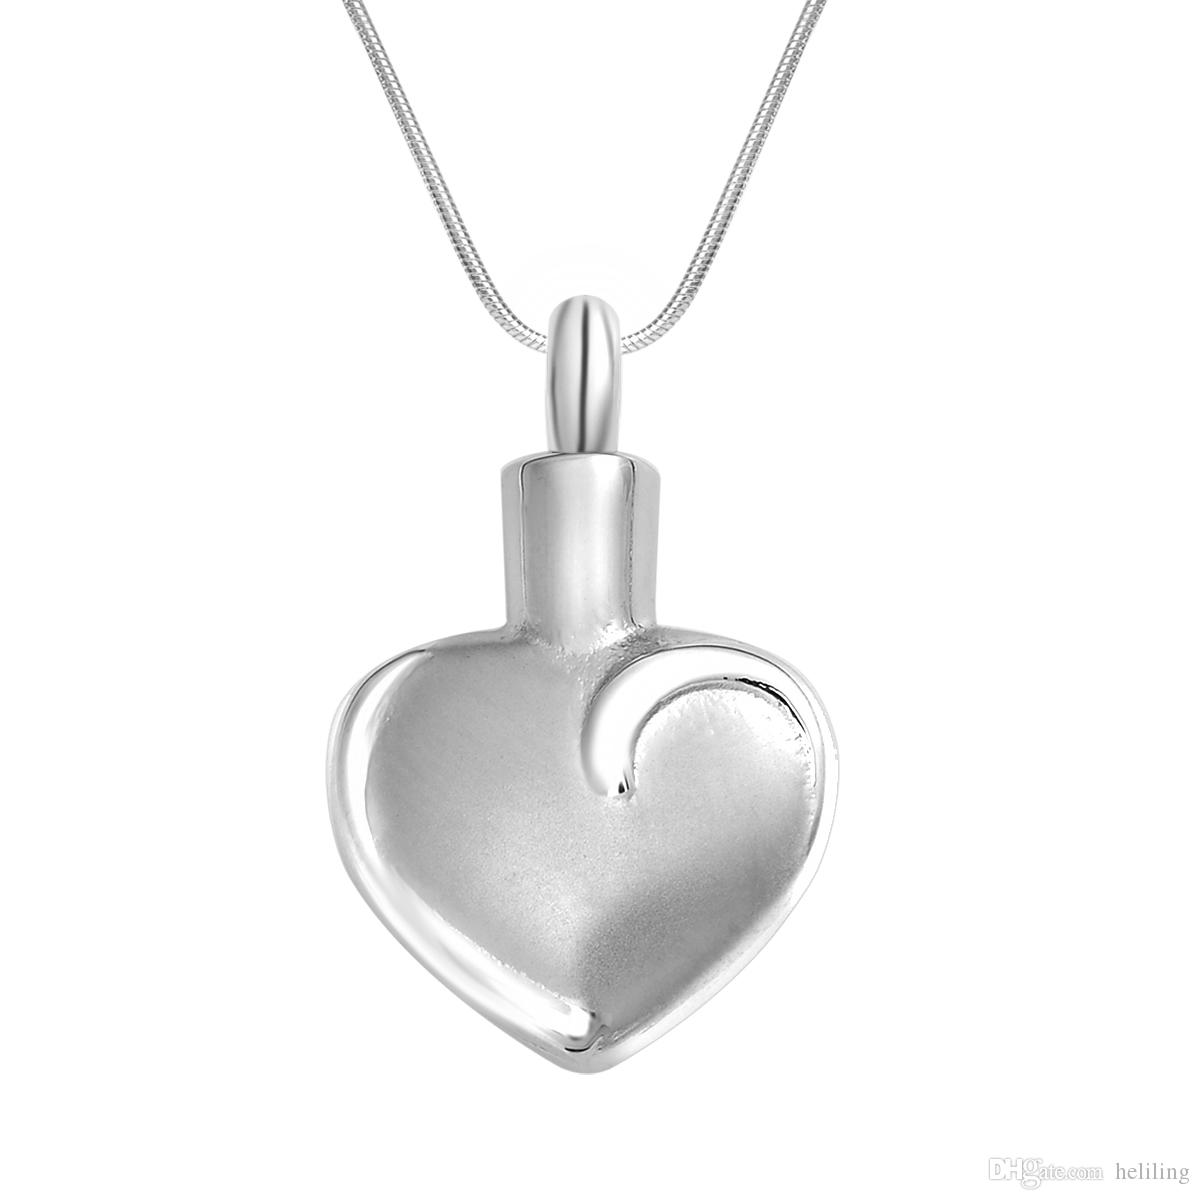 316L Stainless Steel Cremation Jewelry Urn Necklace Heart Love Memorial Keepsake Ashes Holder Pendant Funnel for Ash